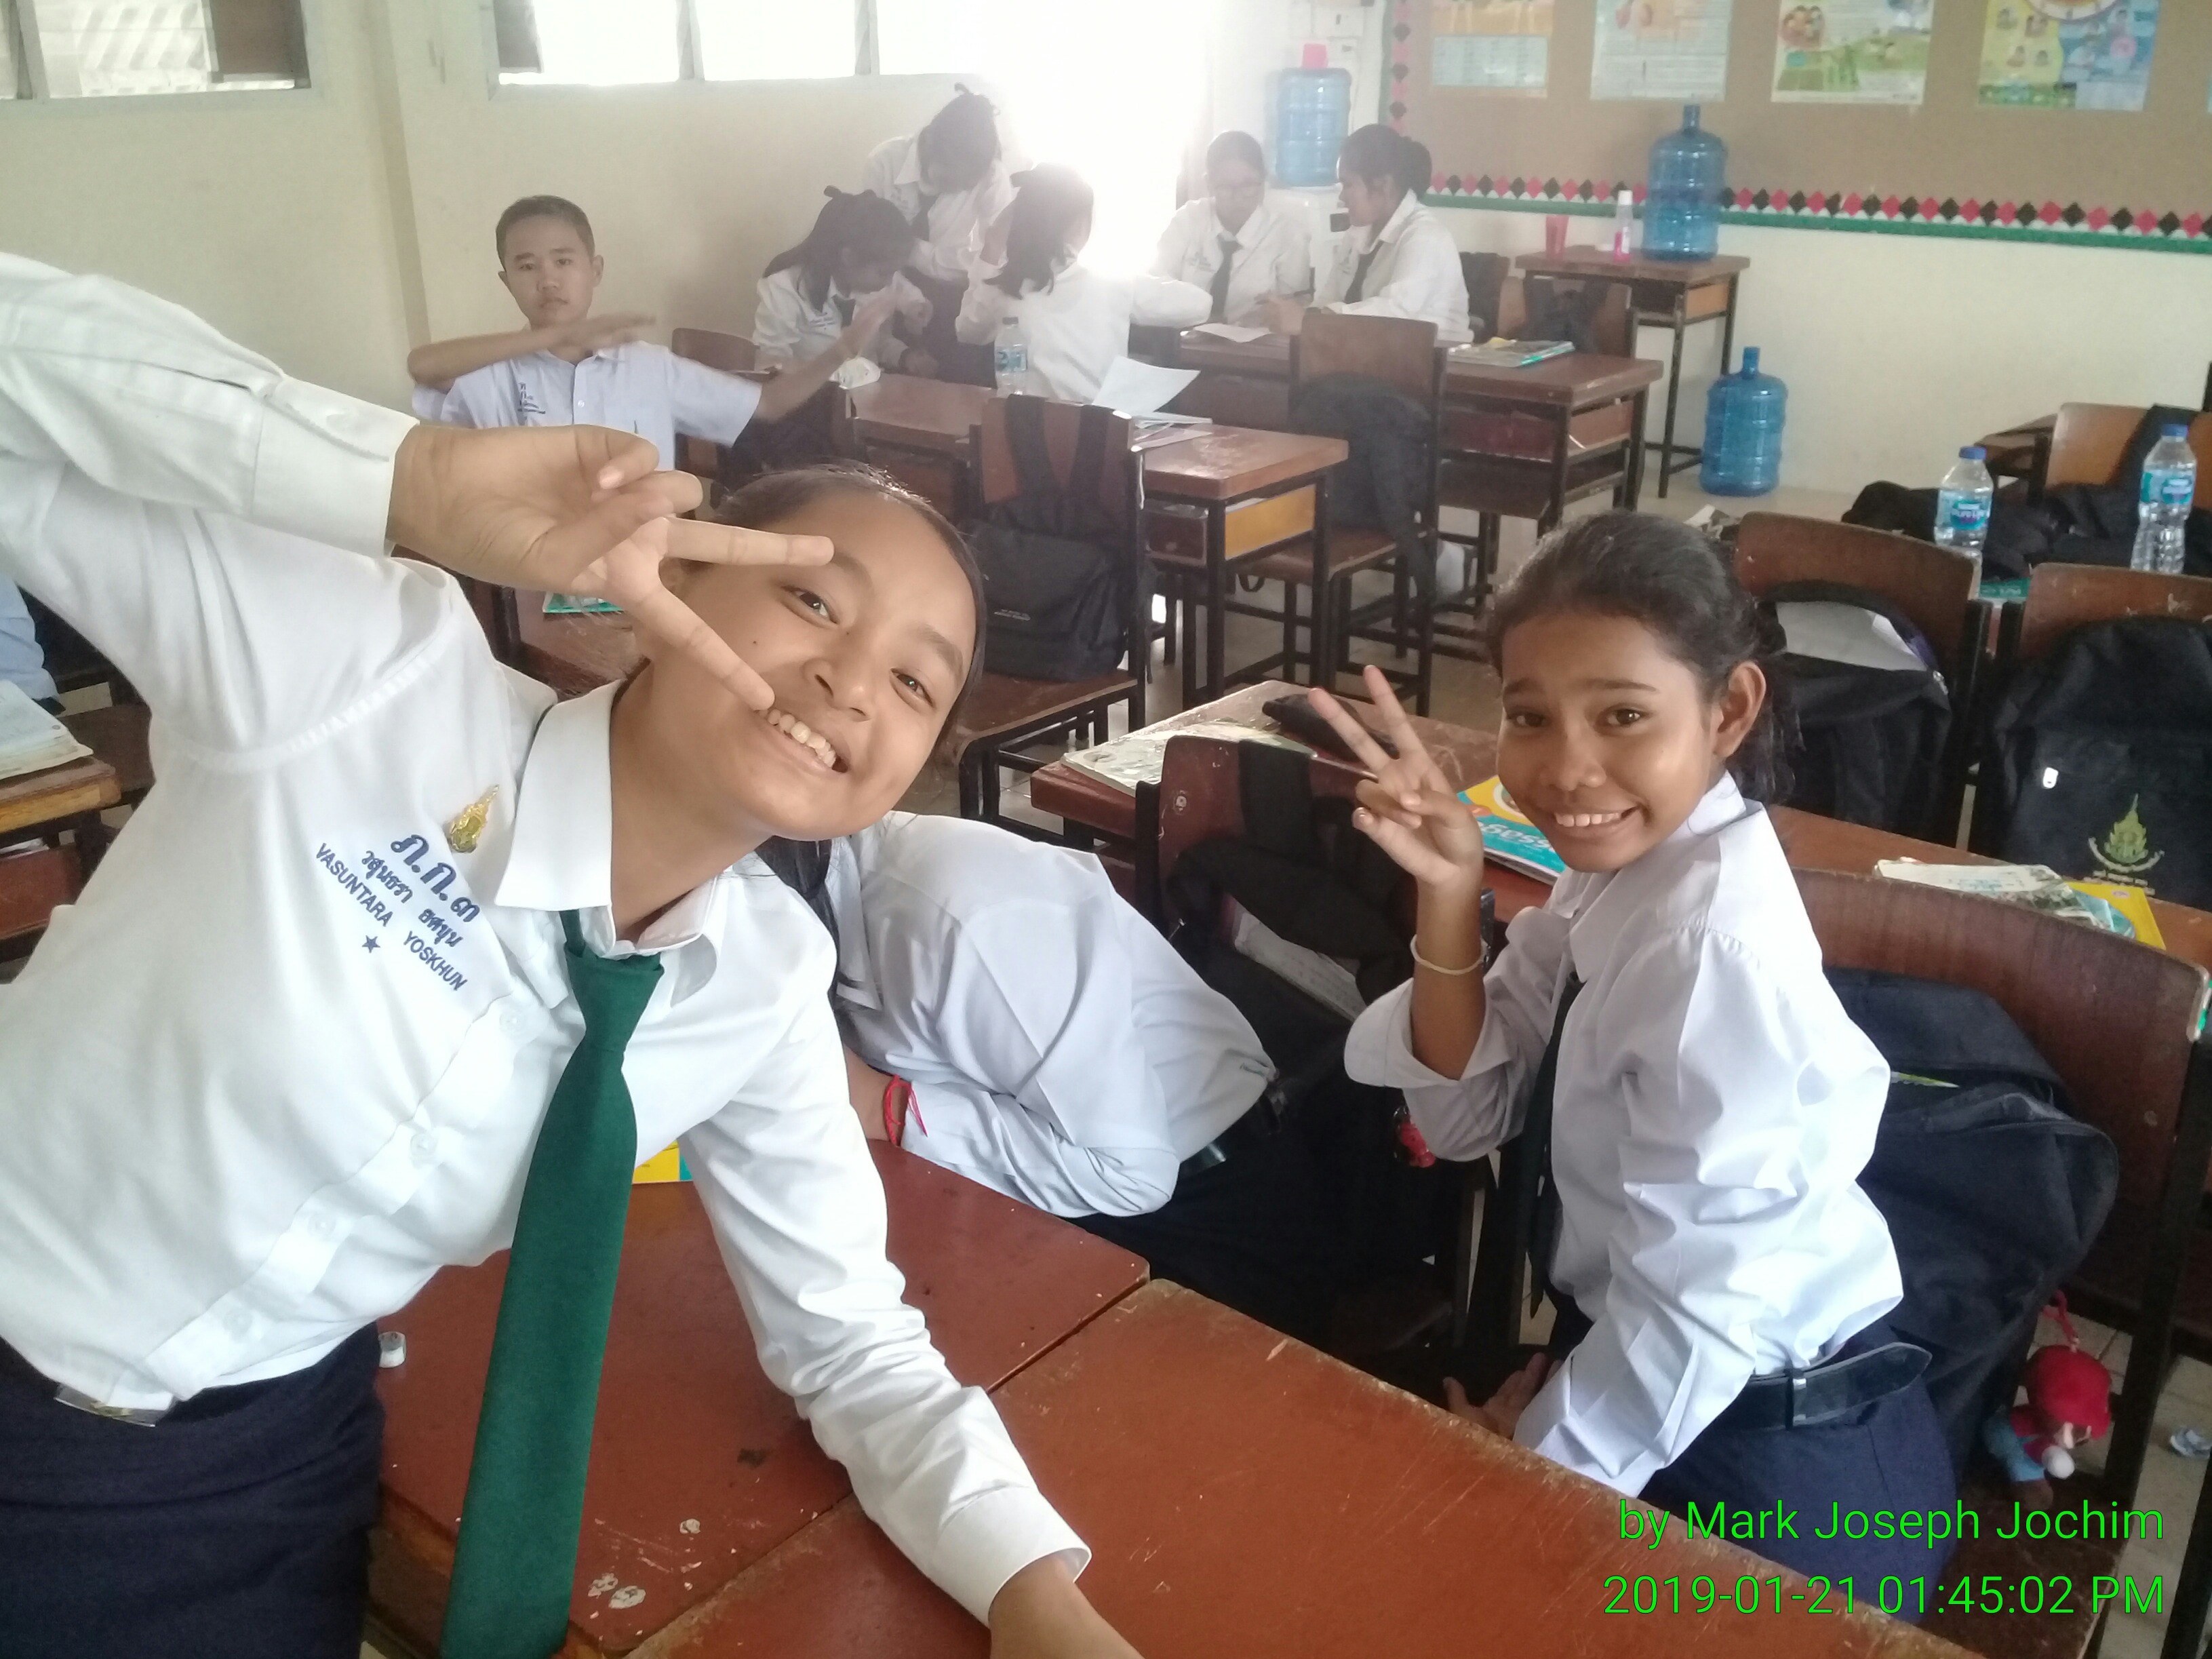 Students in Class M1/2 at Plukpanya Municipal School in Phuket, Thailand. Photo taken on January 21, 2019.